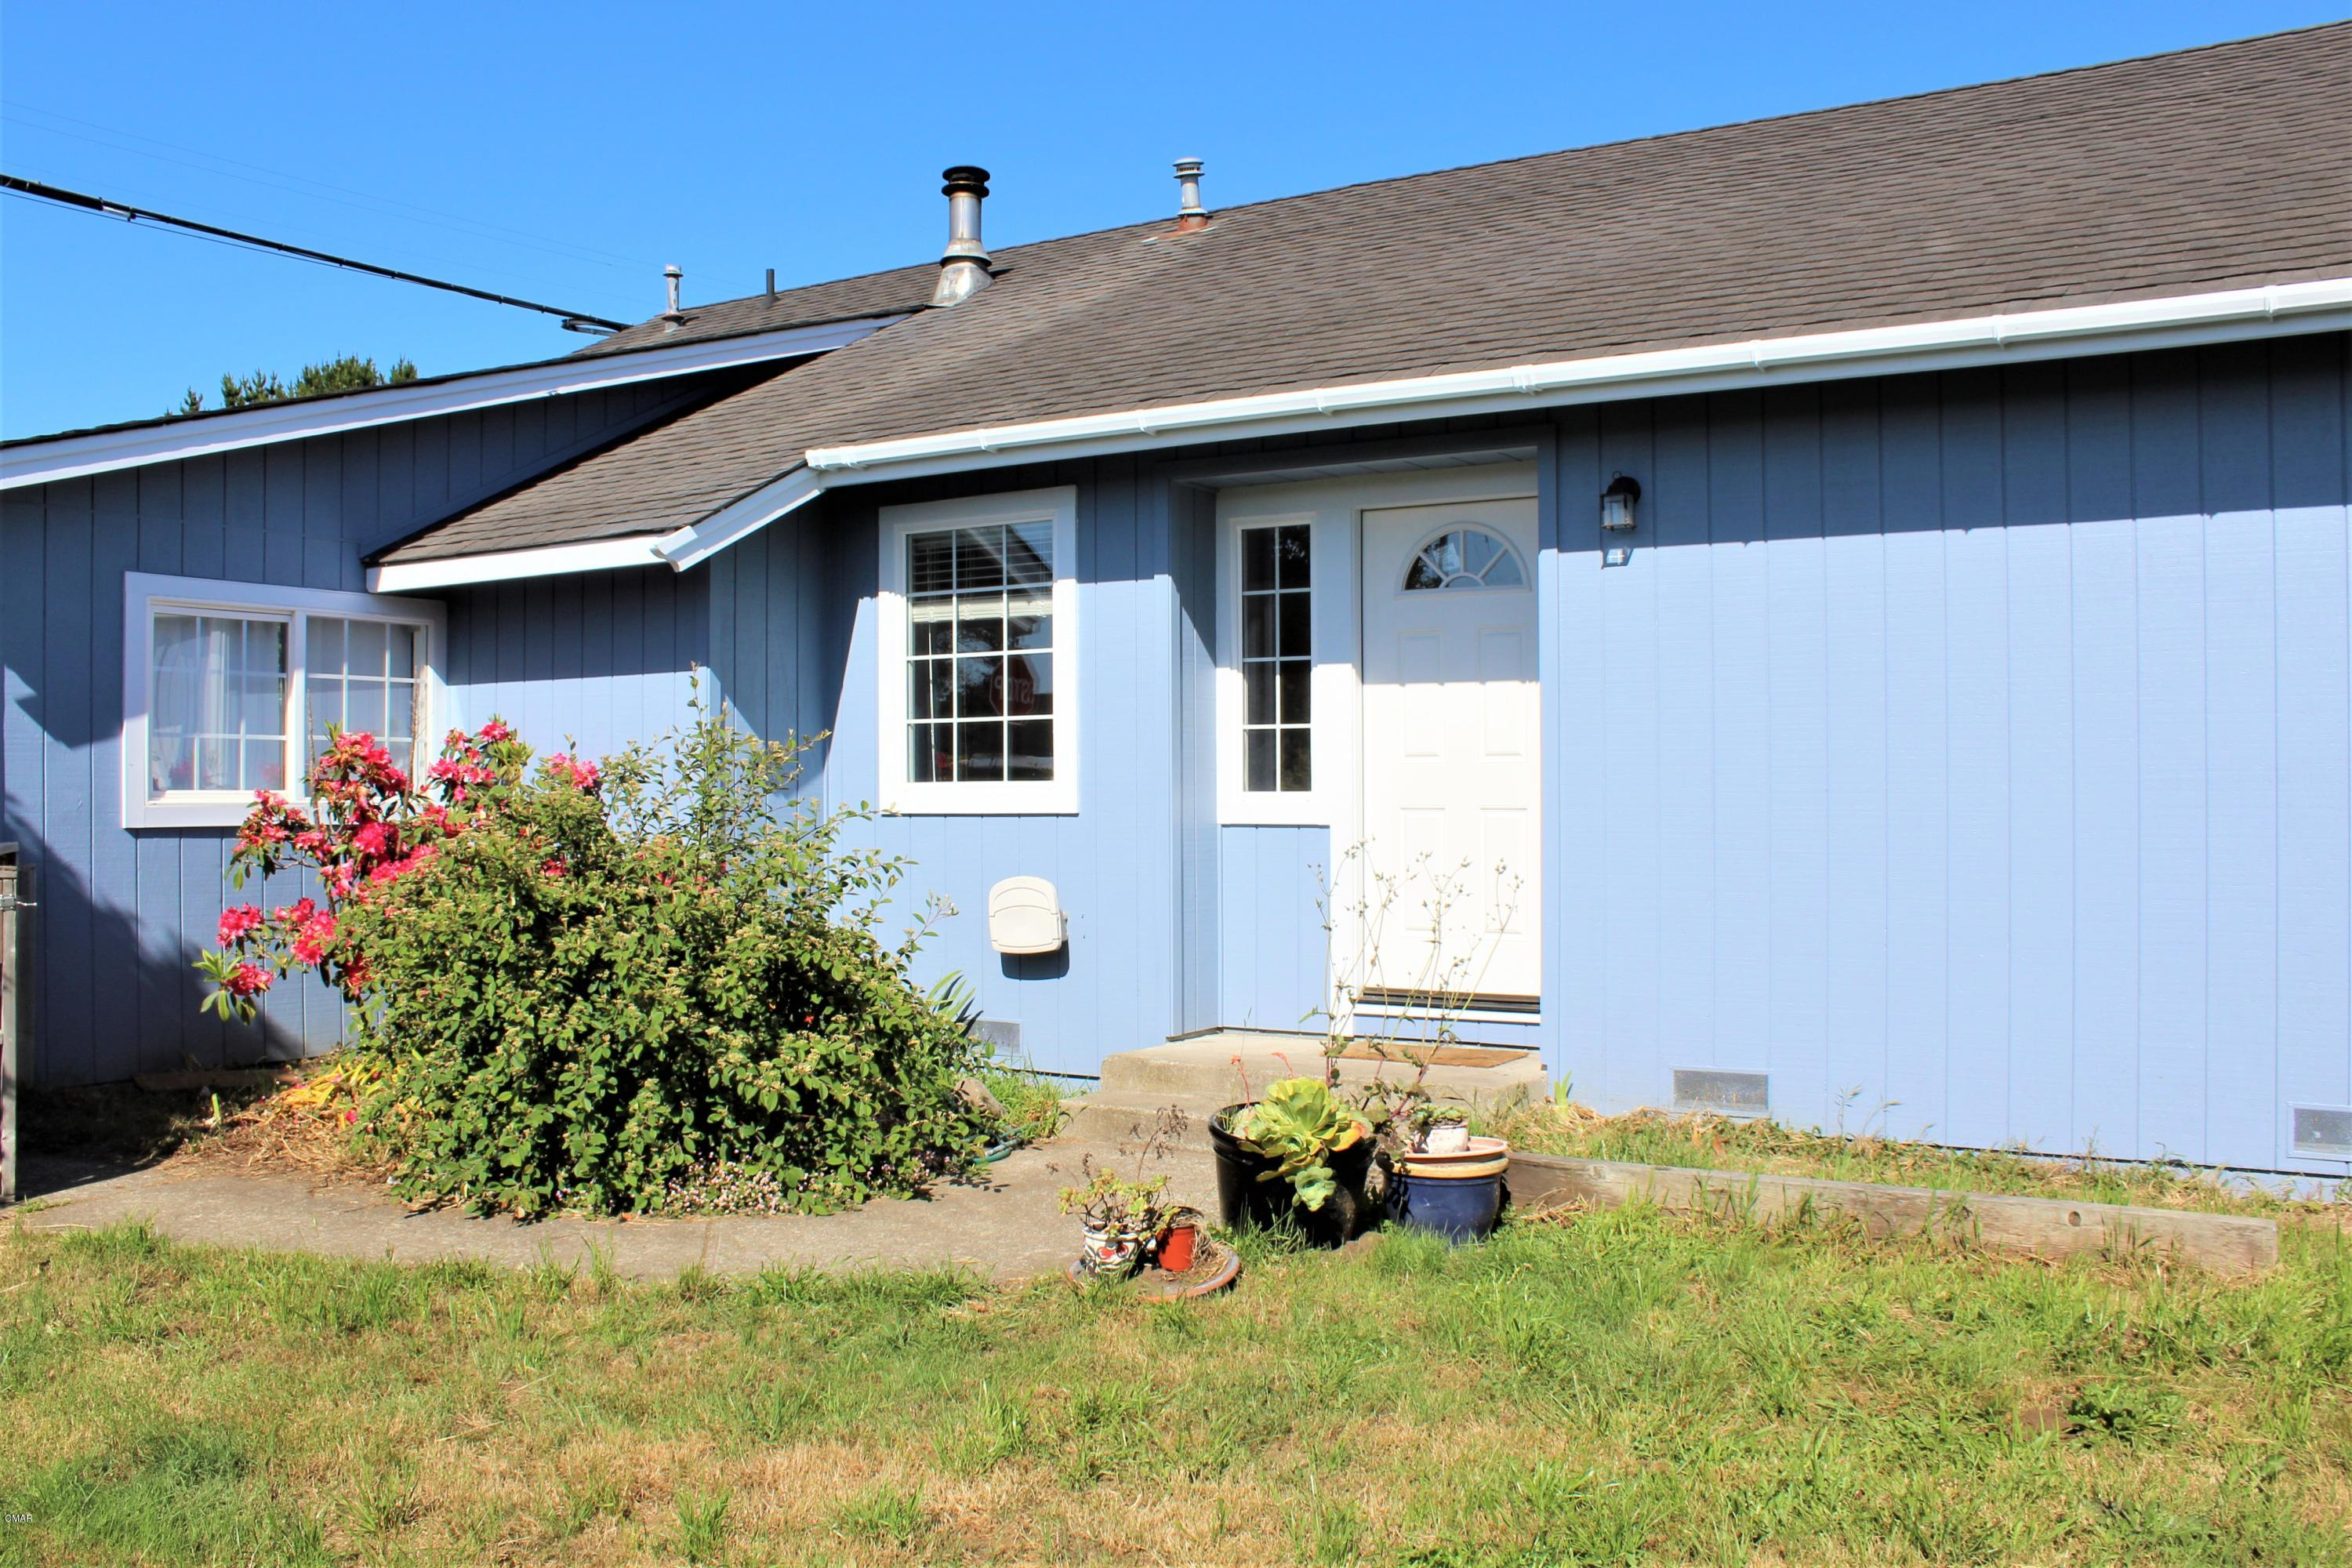 Clean, move in ready 2 bedroom home.  Large living and dining rooms. Part of back yard is fenced for privacy and pet safety. Newer roof, back deck and windows. Exterior paint in 2020.  This parcel spans from Woodward to Hazelwood Streets but is only partially fenced. Two storage sheds. This location is close to harbor and coast trails.